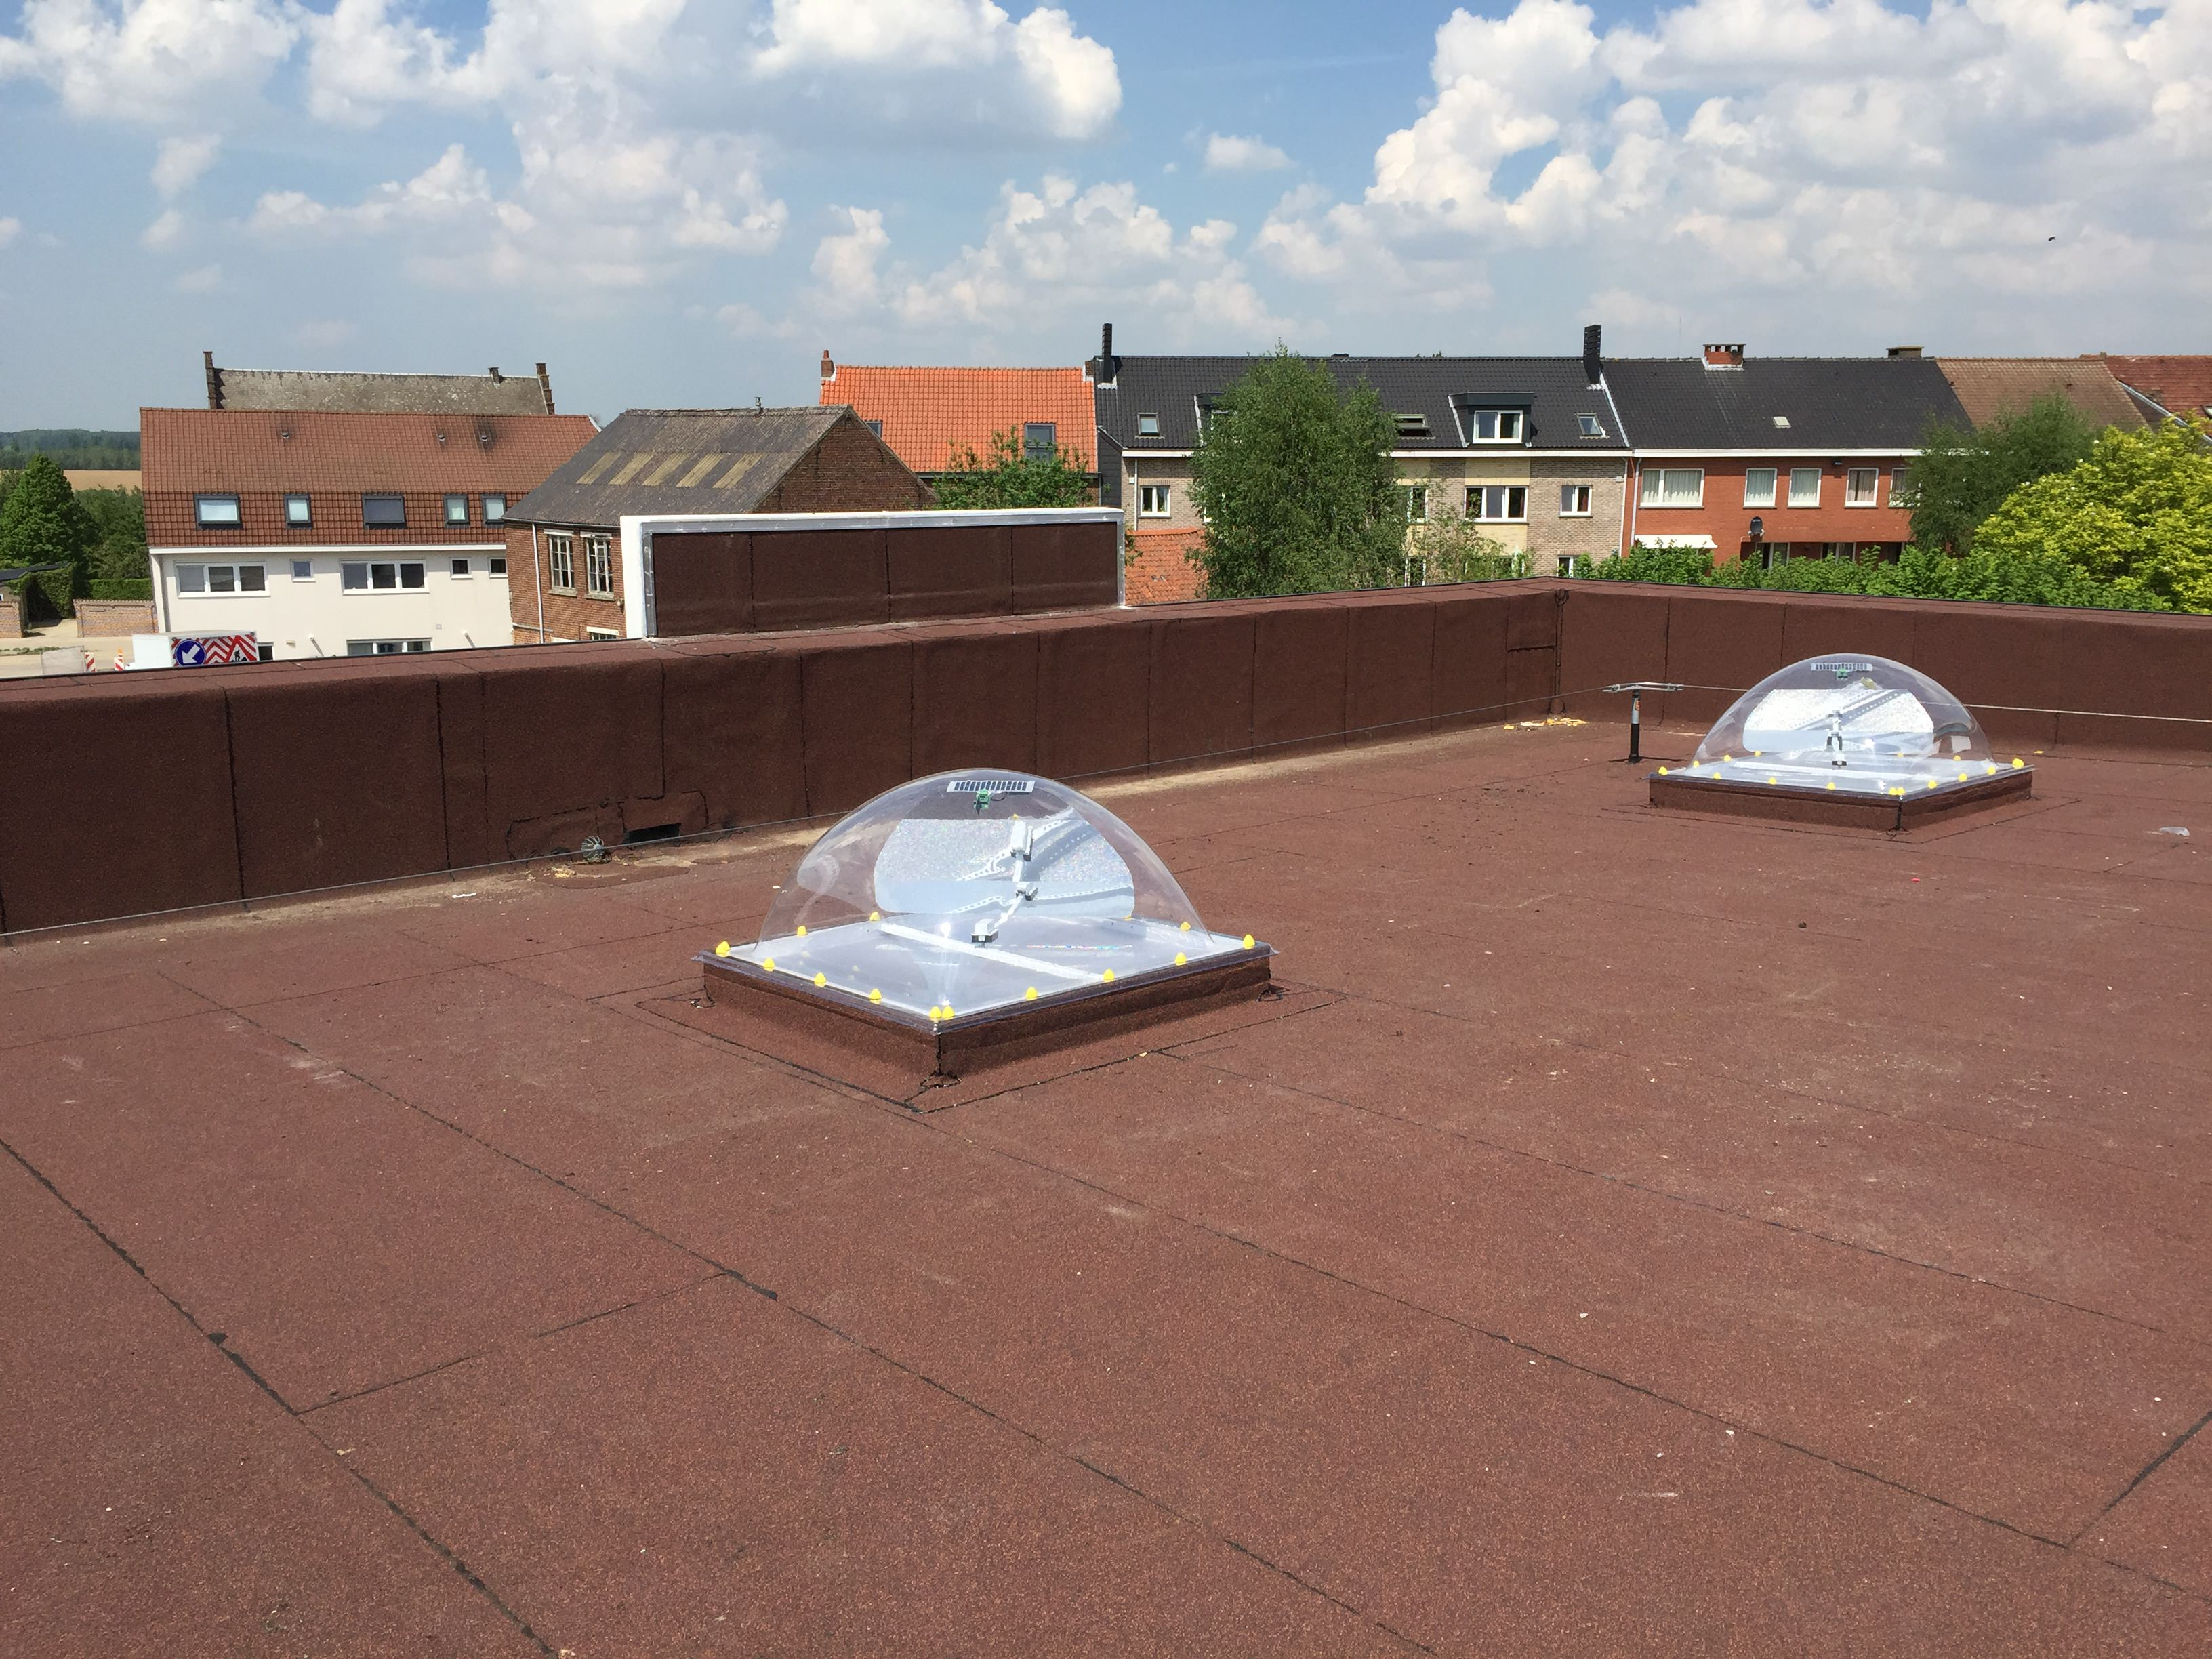 skylight-dome-okay-pepingen-02